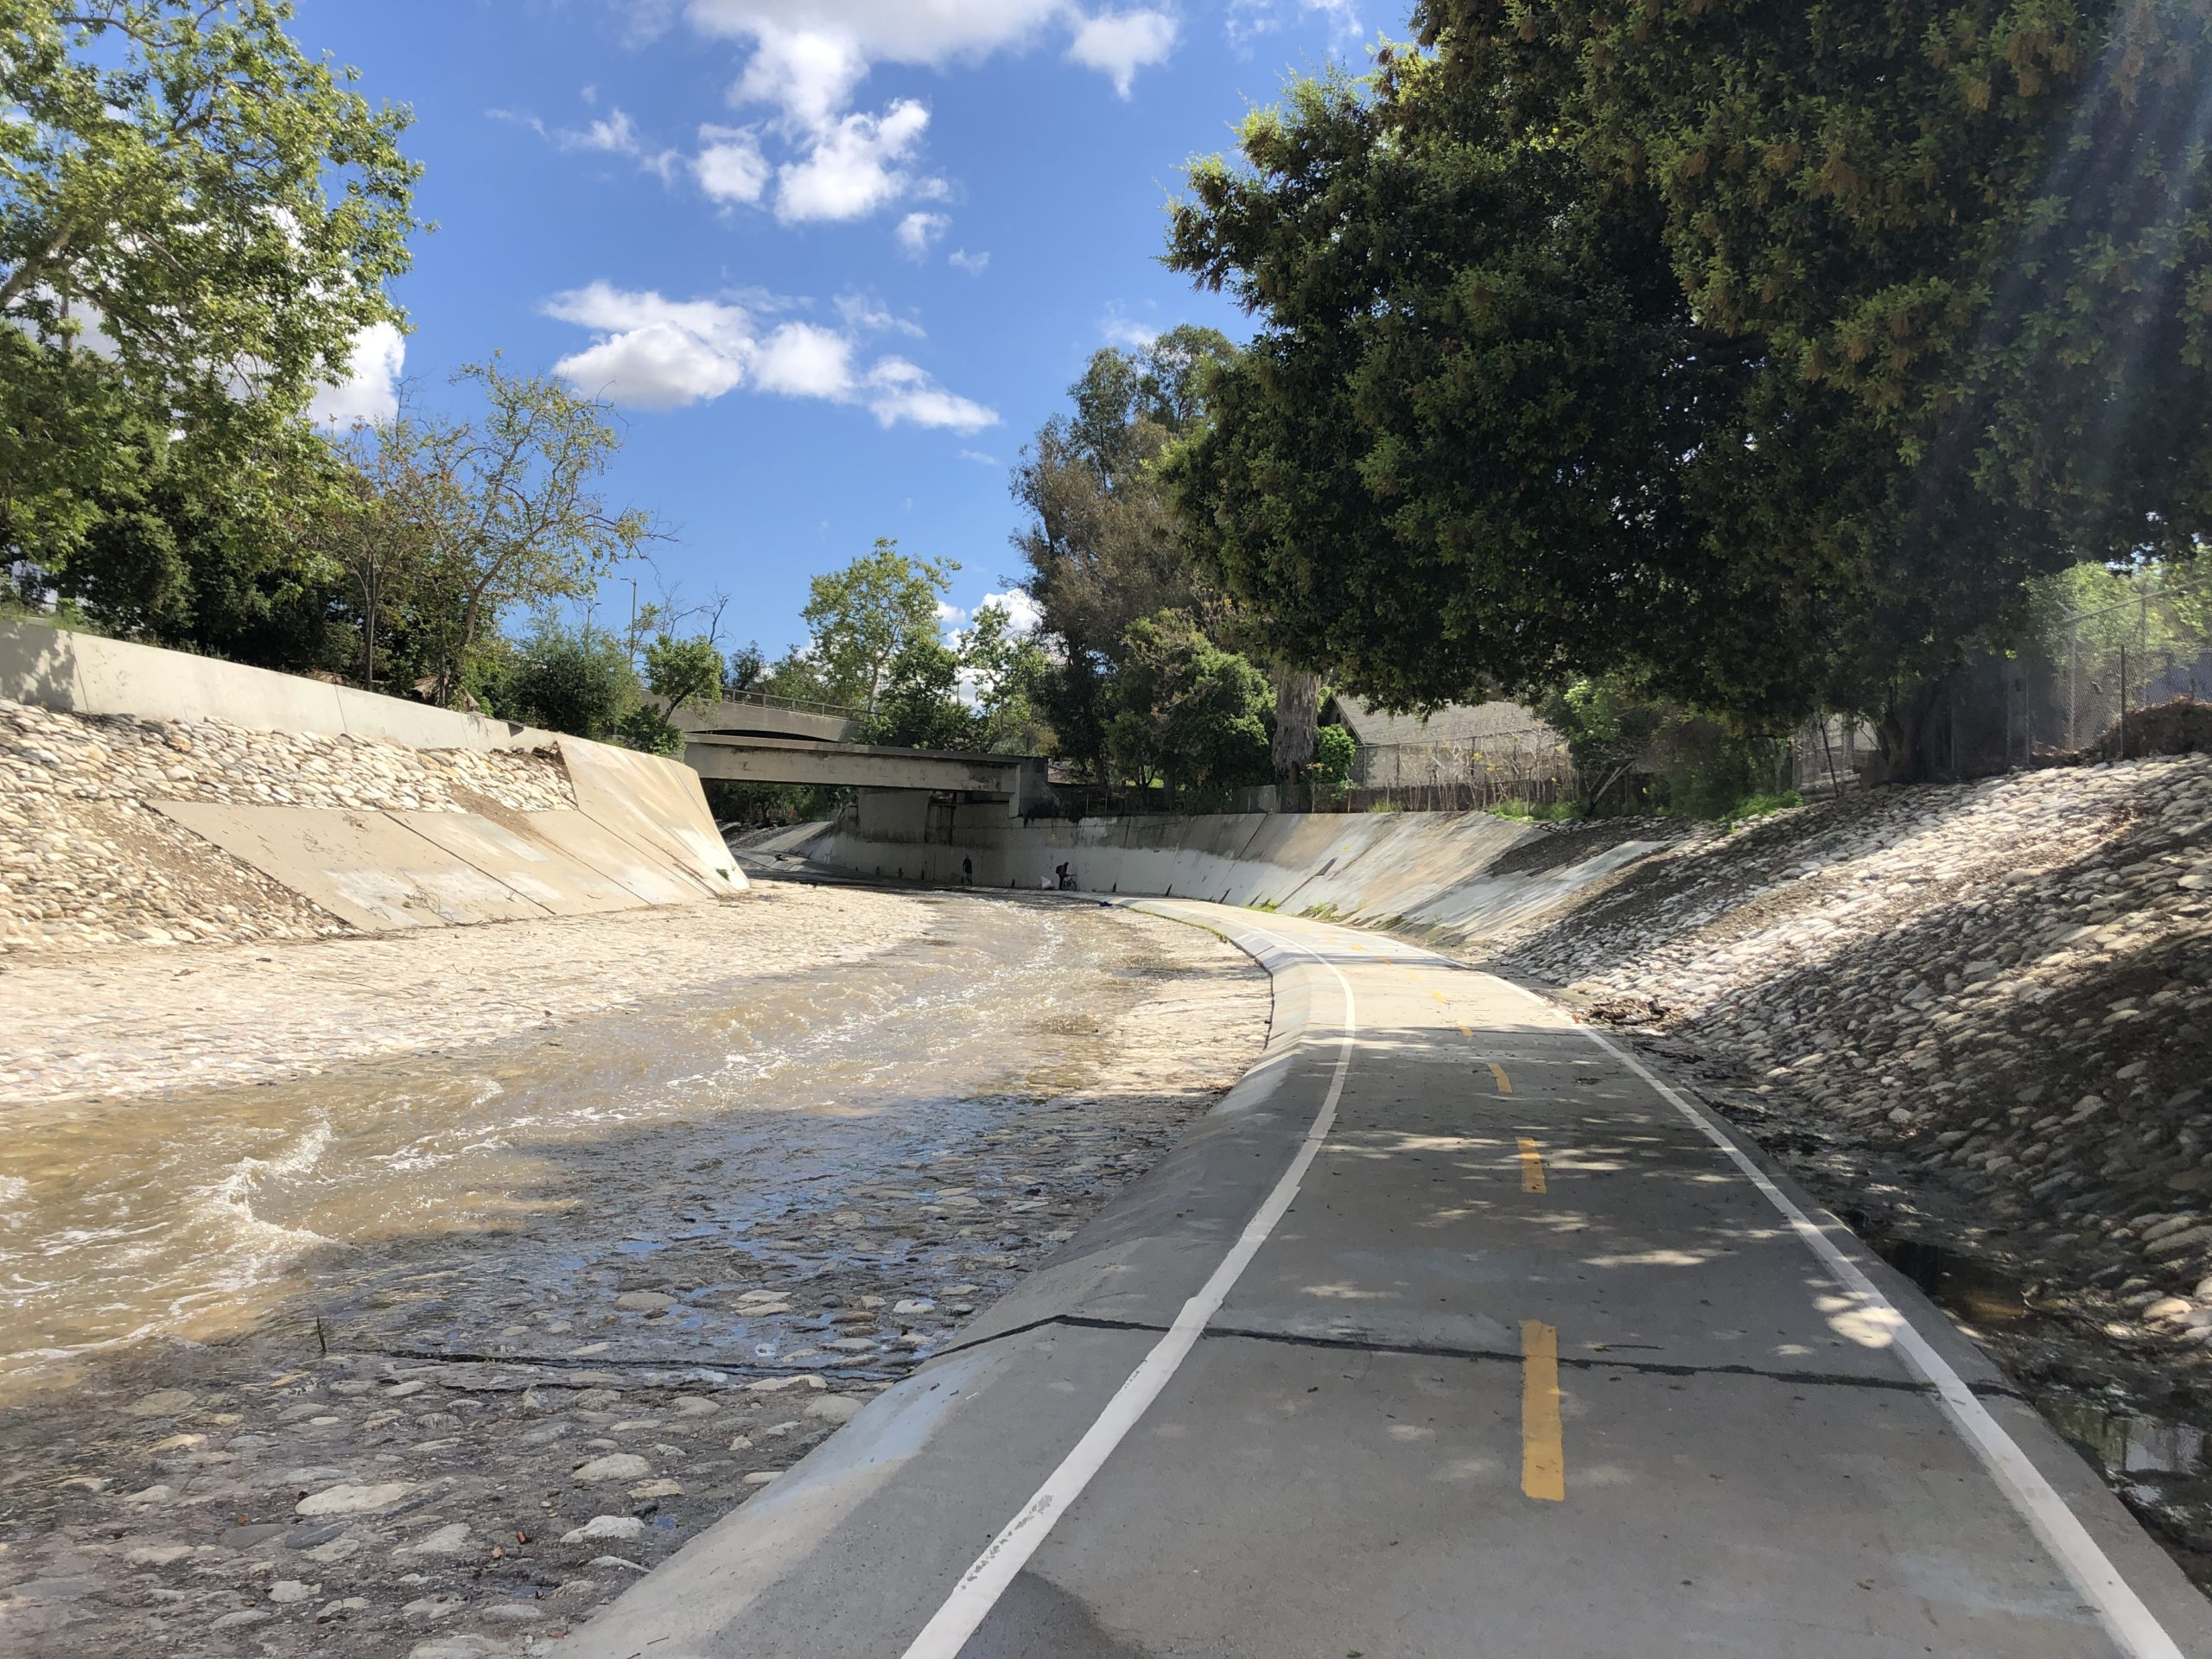 Arroyo Seco Bicycle and Pedestrian Trail